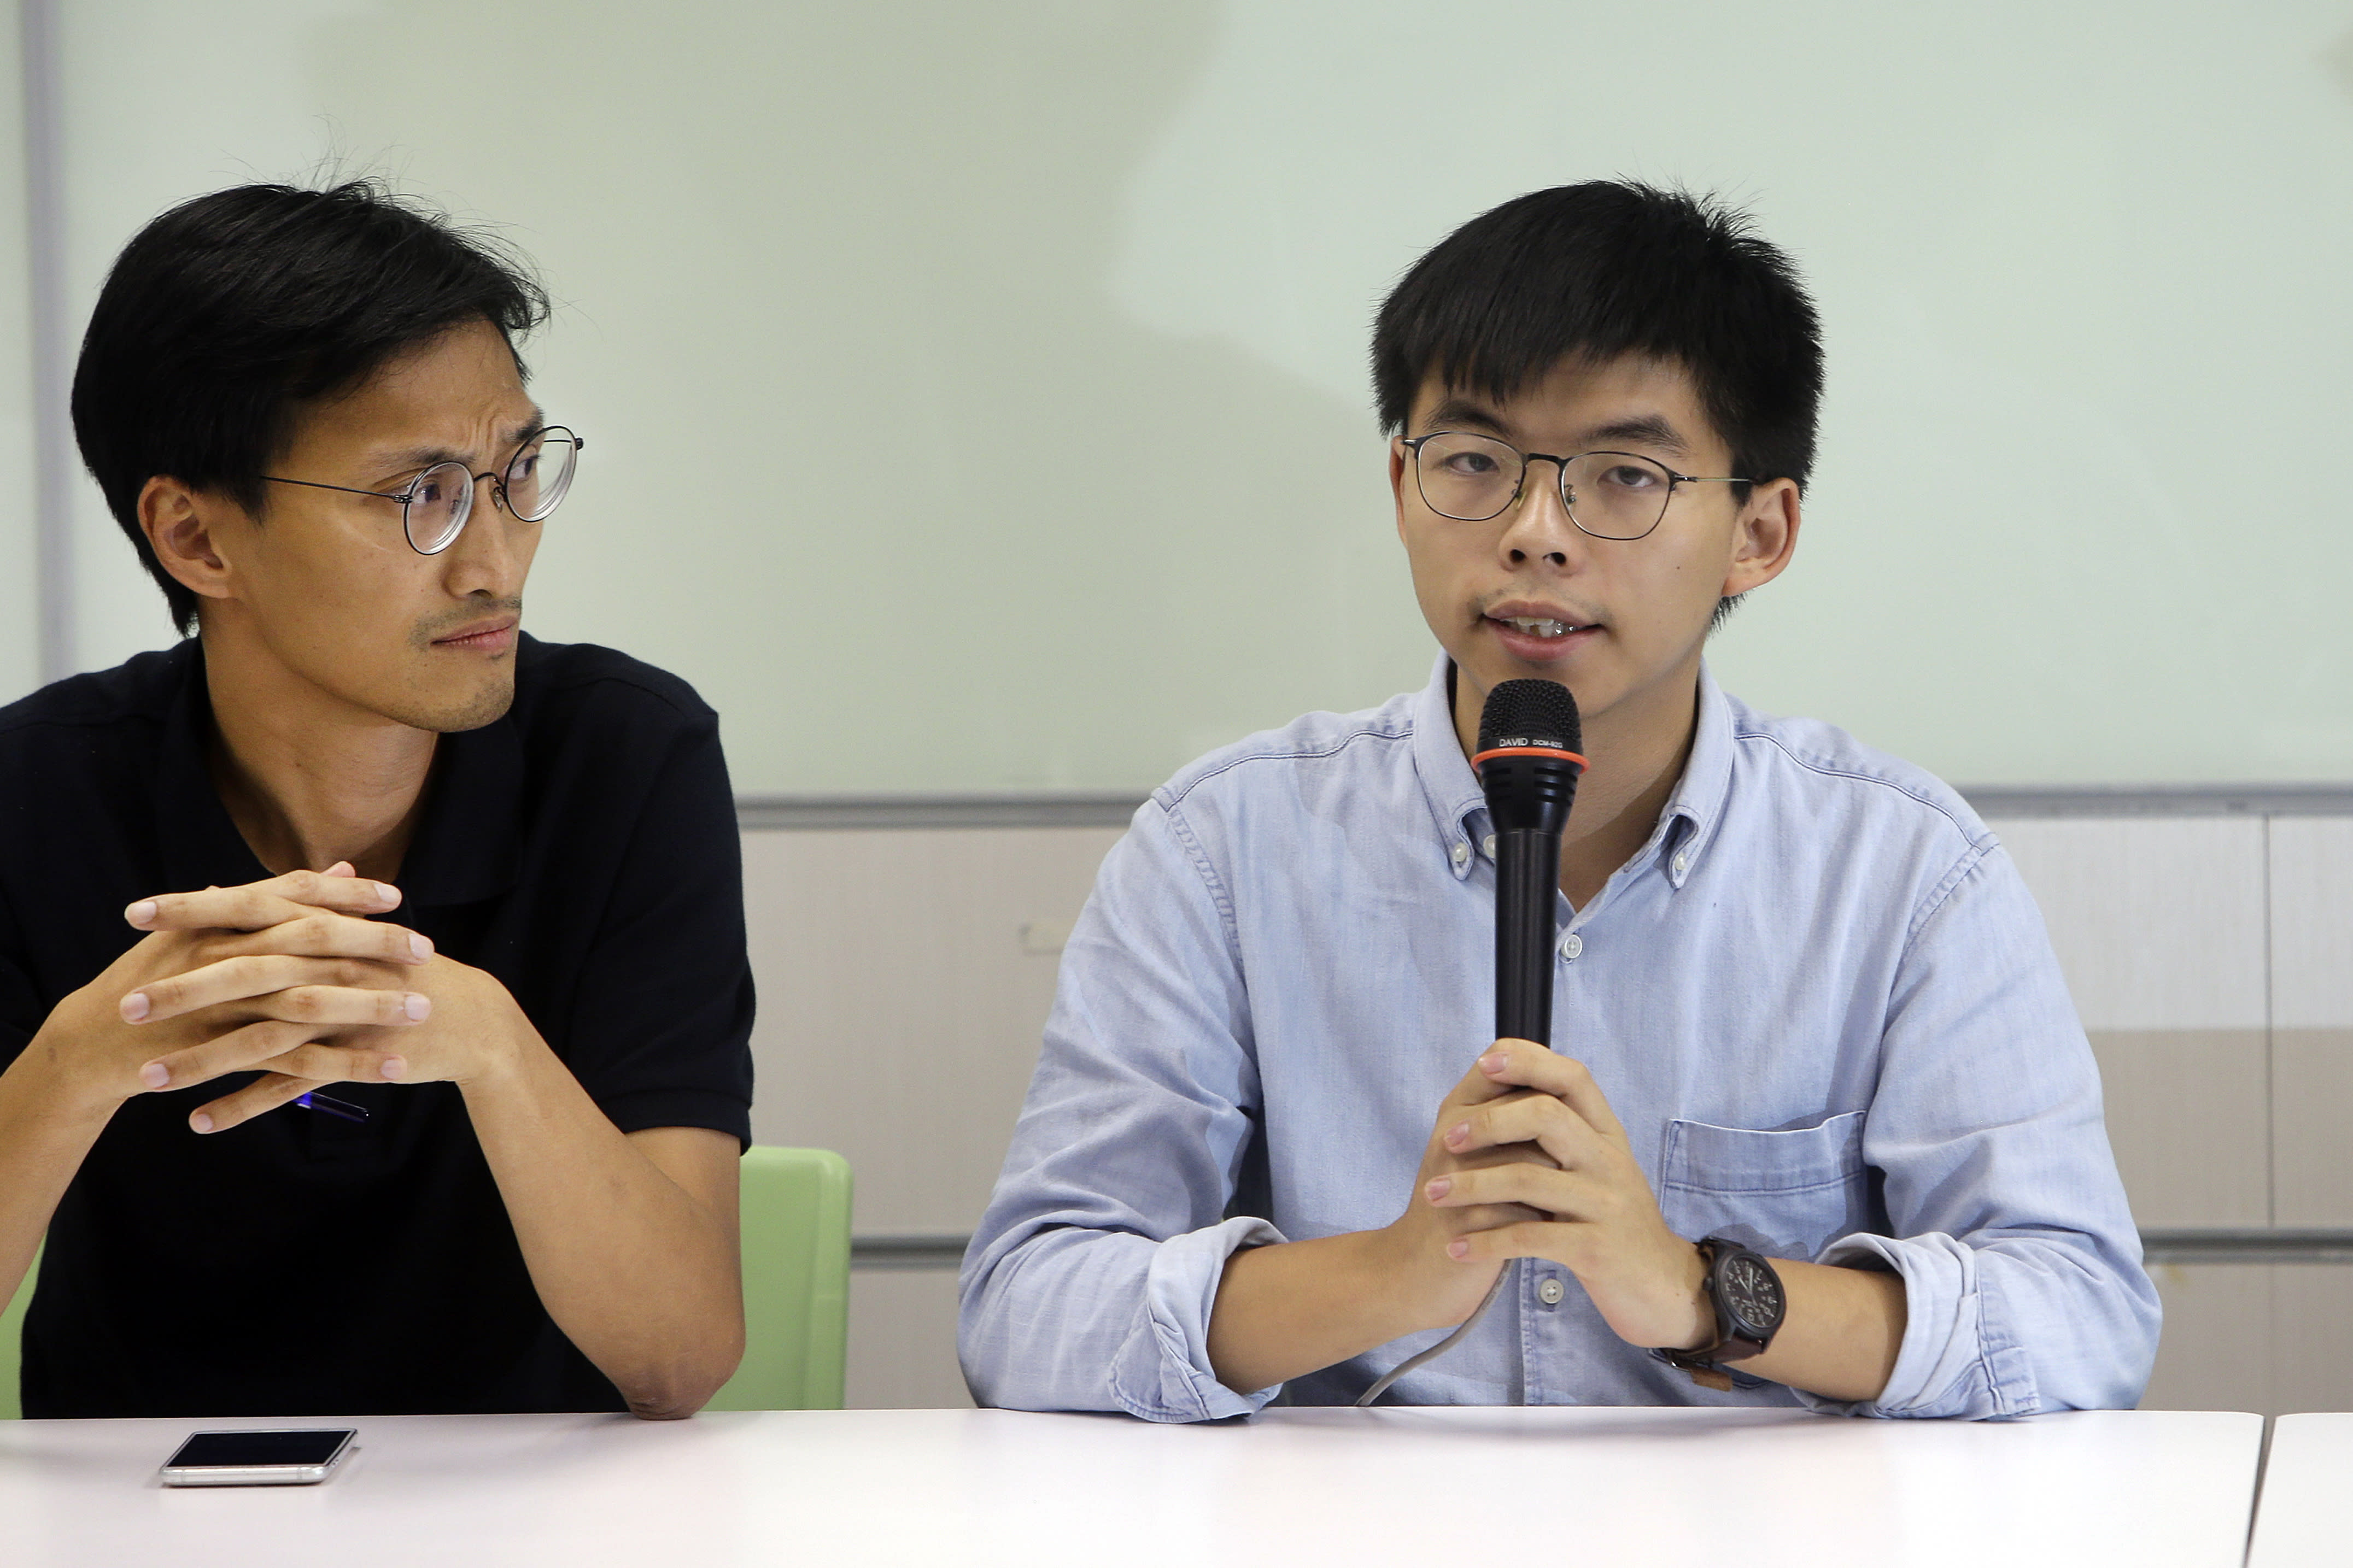 Hong Kong activist Joshua Wong, right, answers to the press after meeting with Taiwan Democratic Progressive Party (DPP) political leaders in Taipei, Taiwan, Tuesday, Sept. 3, 2019. Joshua Wong visited pro-democracy political leaders and joint forum during a two-days trip from Tuesday in Taiwan. (AP Photo/ Chiang Ying-ying)